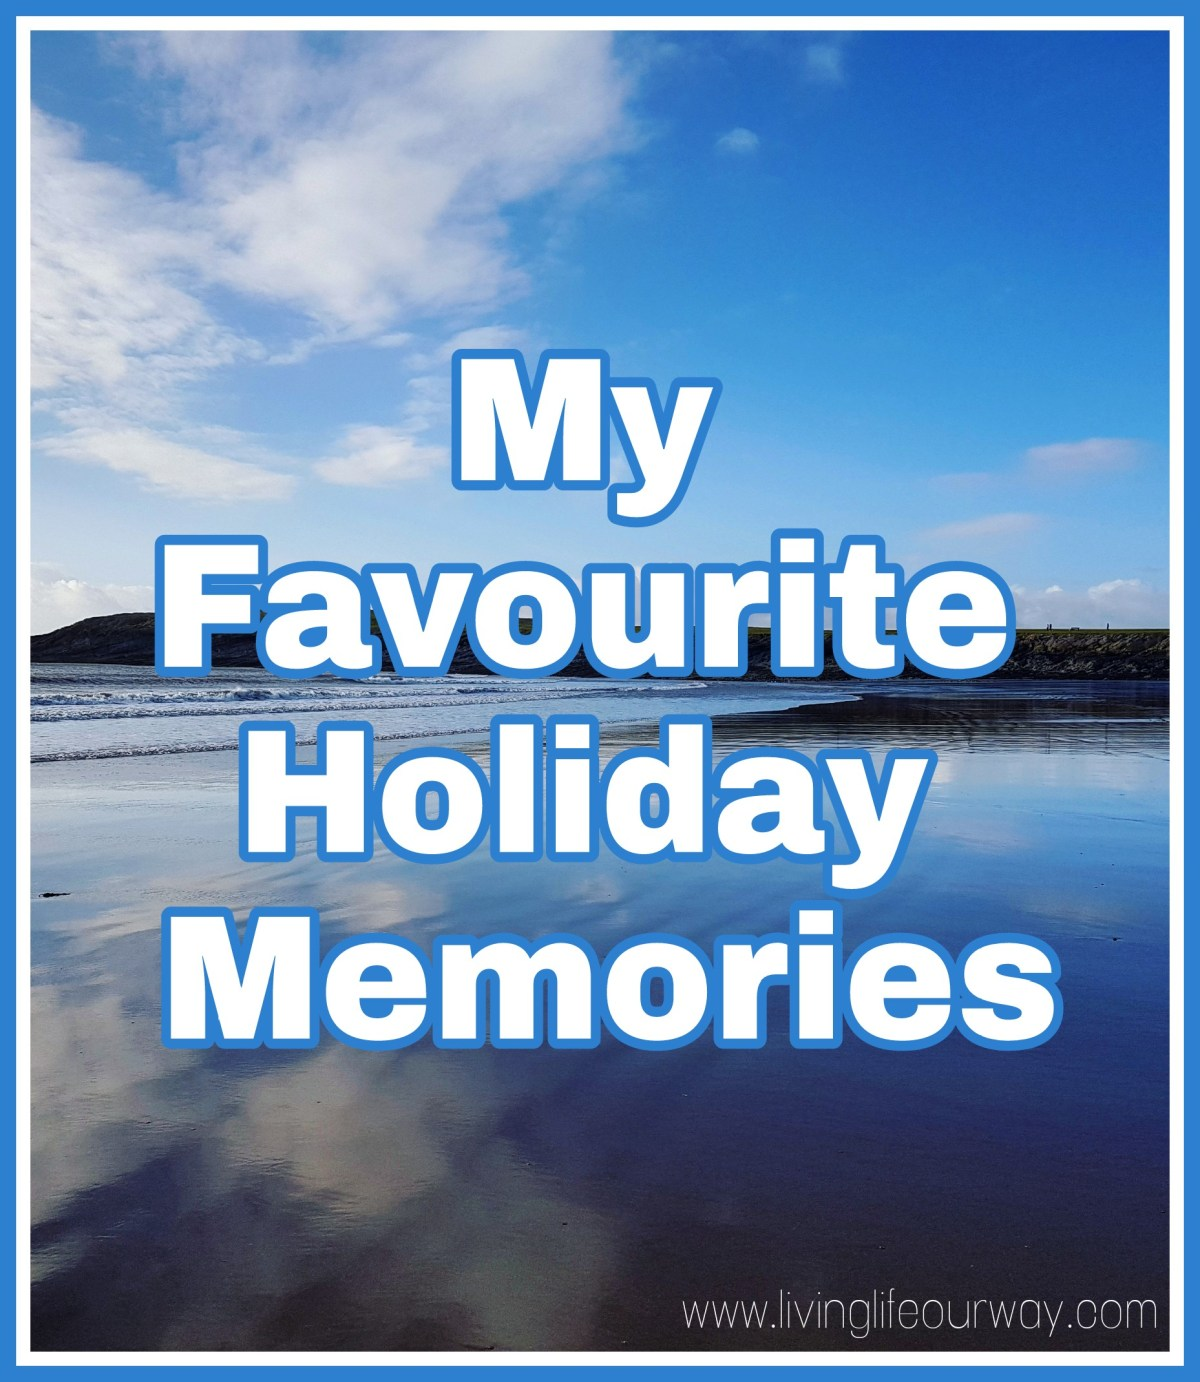 My Favourite Holiday Memories